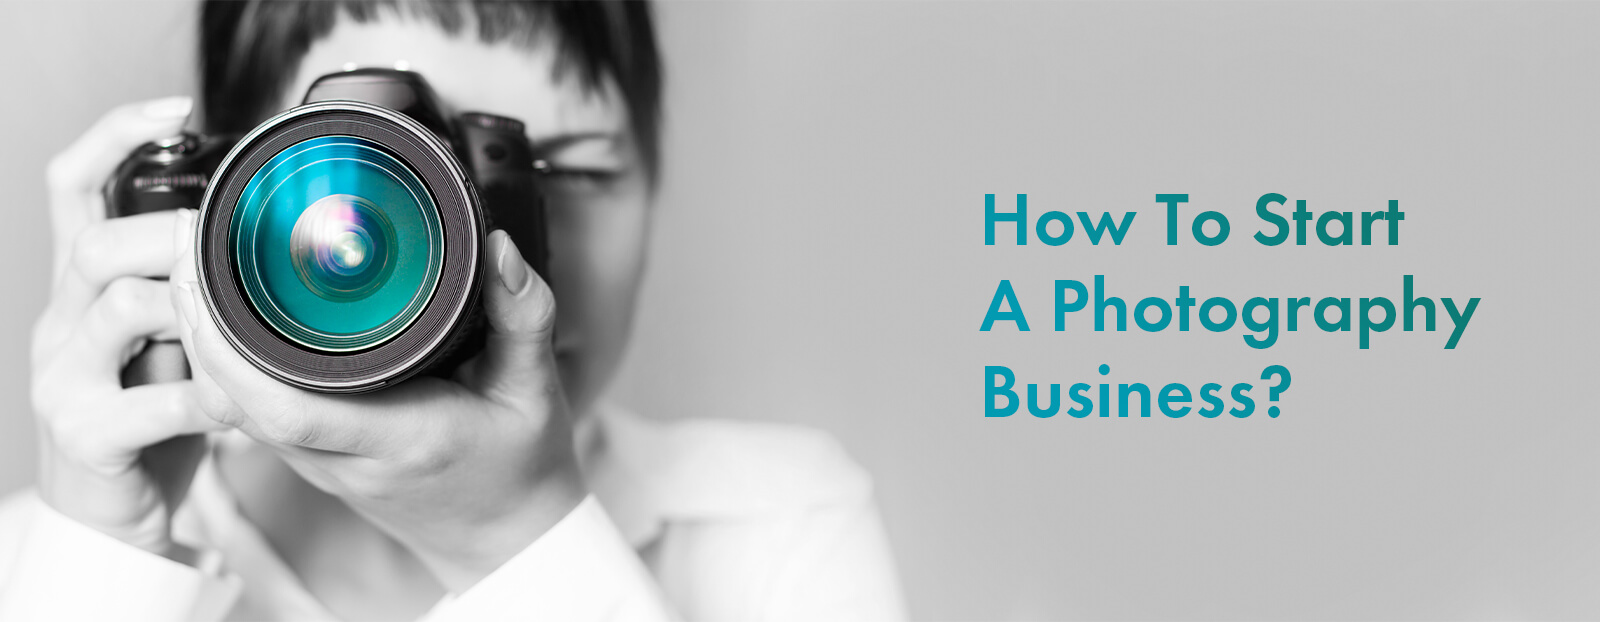 How To Start A Photography Business?